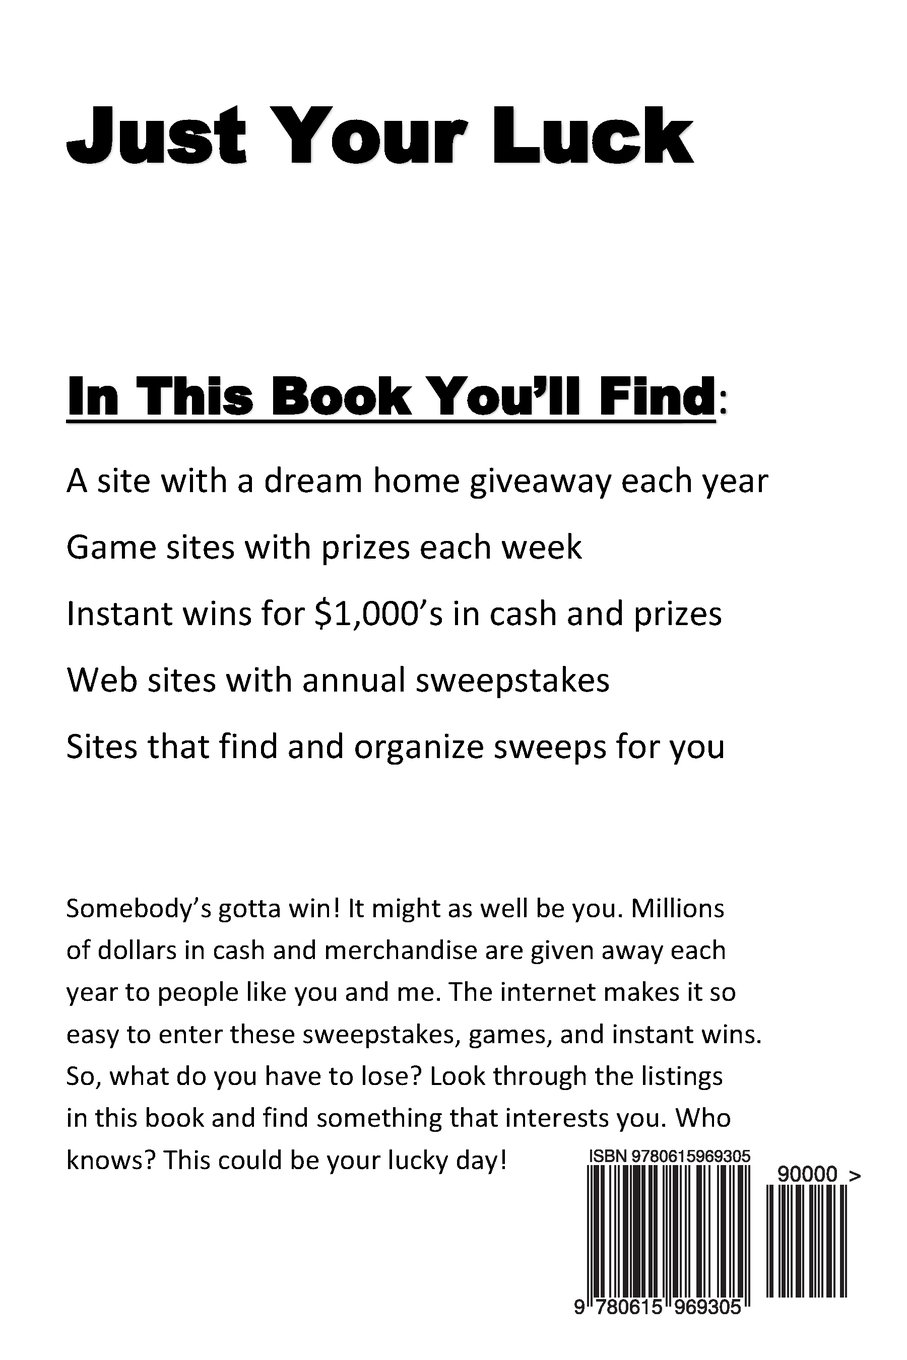 Just Your Luck: Where to find sweepstakes, games, and